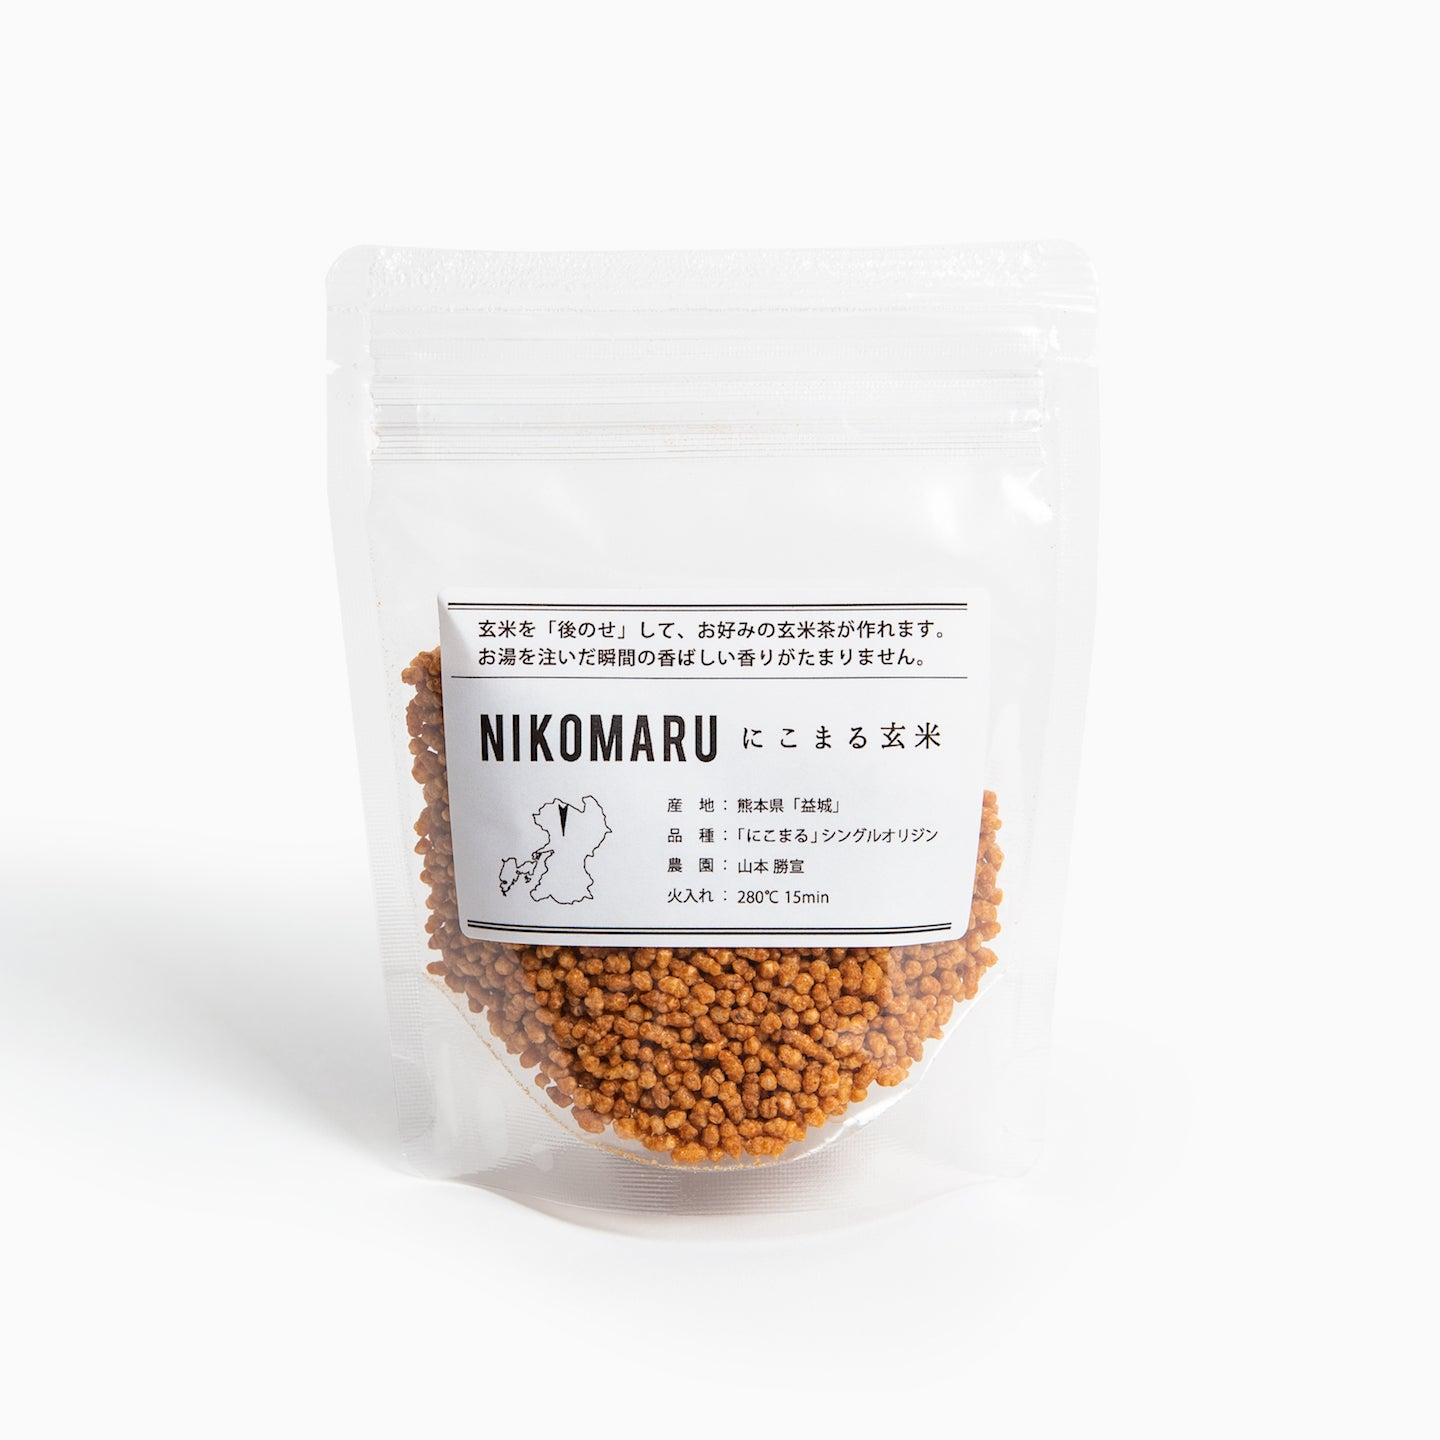 NIKOMARU Genmai(brown rice)